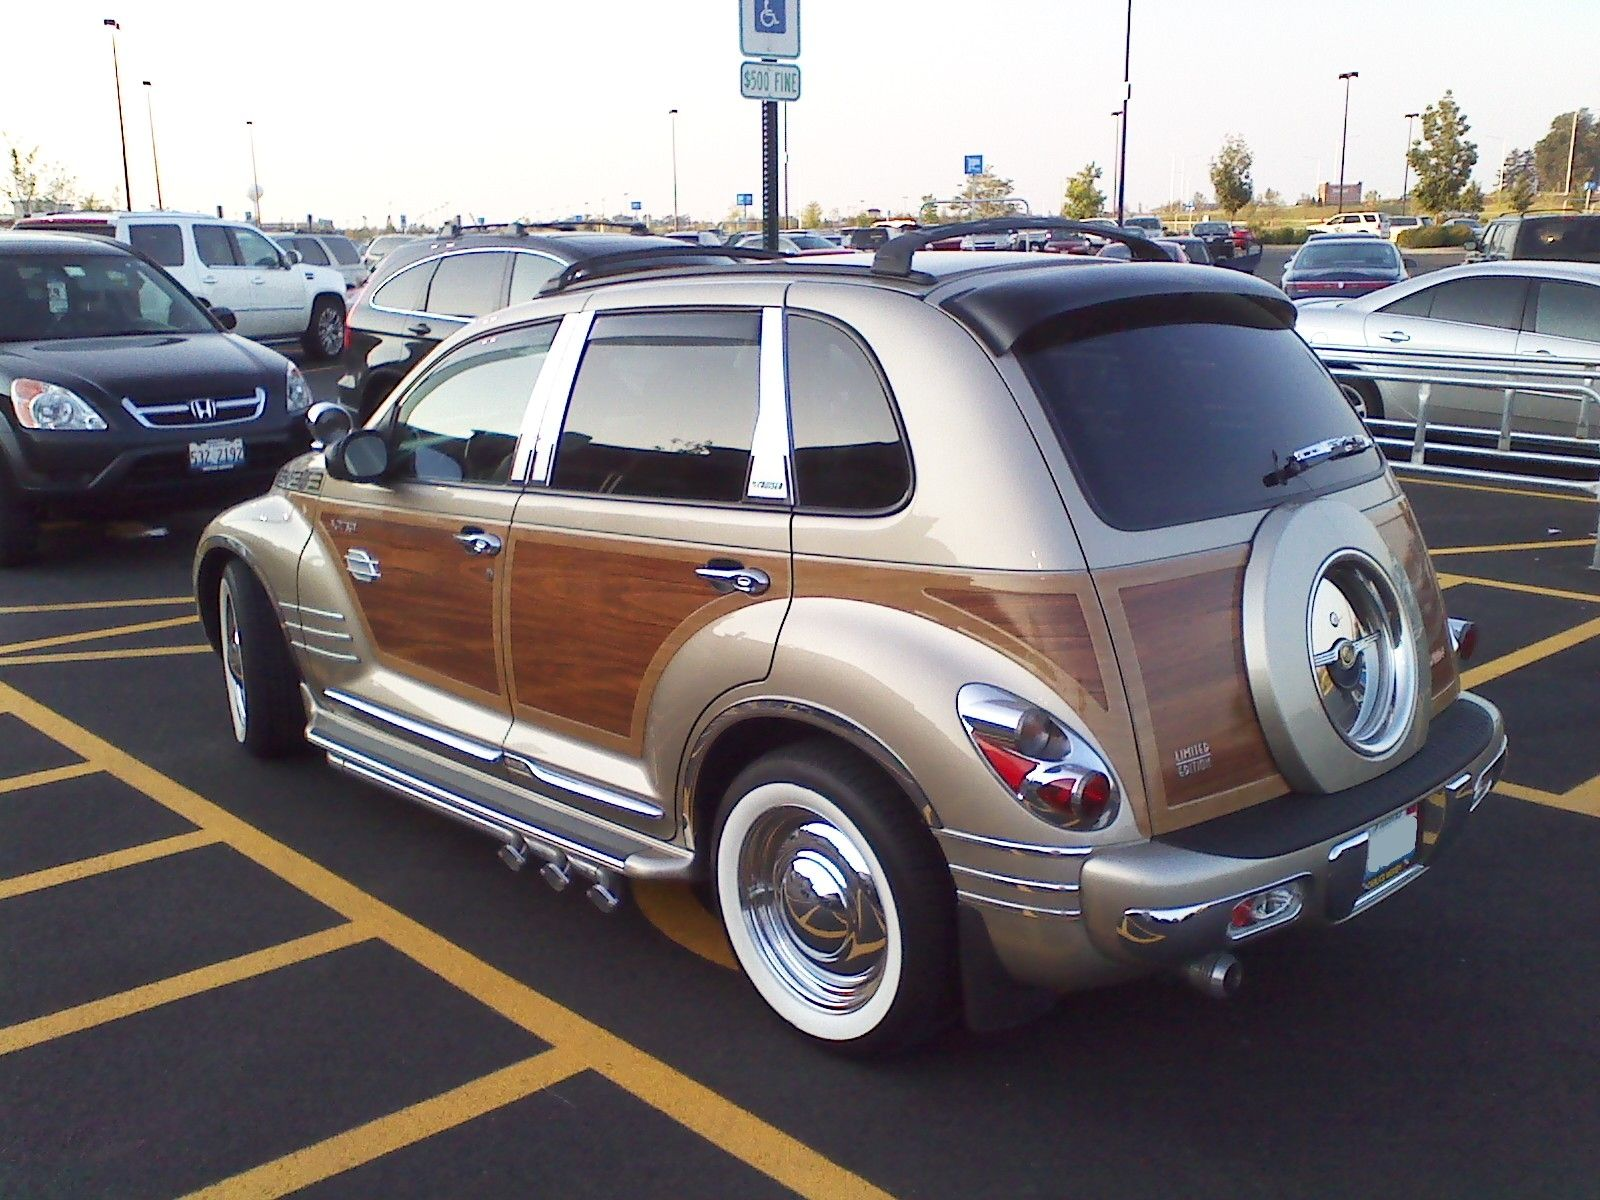 custom pt cruiser | View photo of Custom Chrysler PT Cruiser